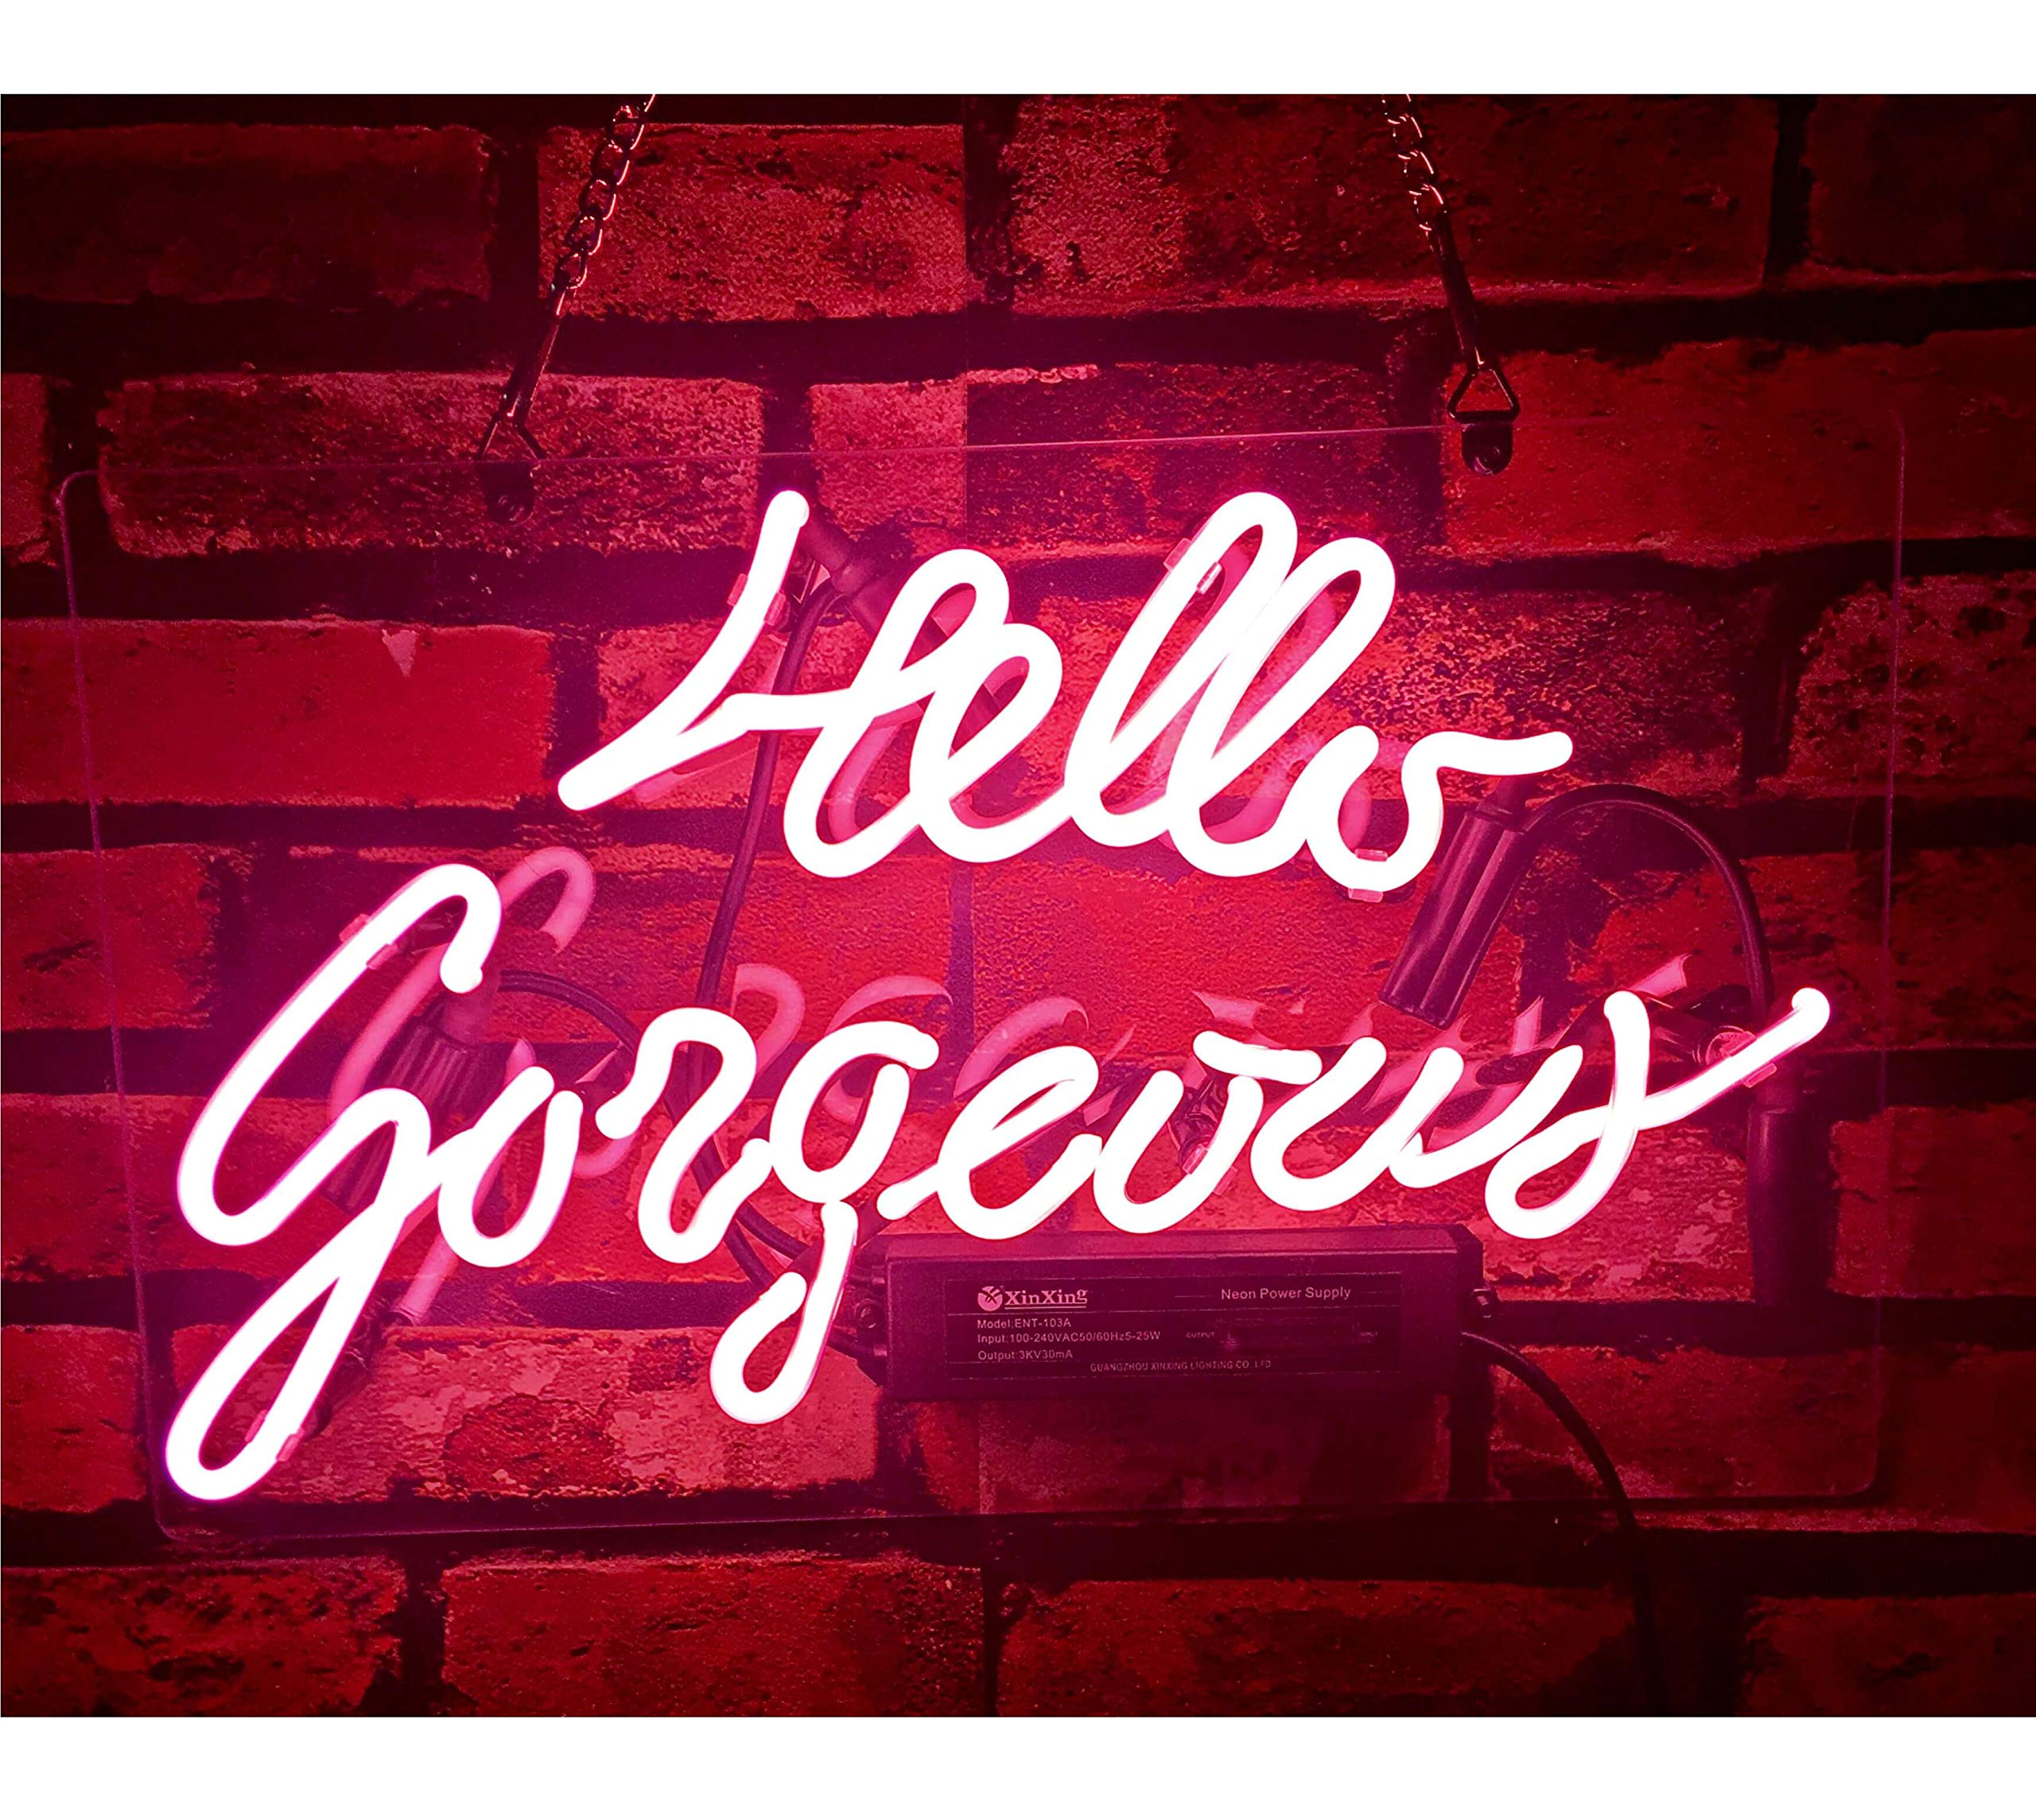 Gritcol Pink Hello Gorgeous Neon Sign Man Cave Room Decor Night Light Love Gifts Real Glass Hand Made 14''x9''